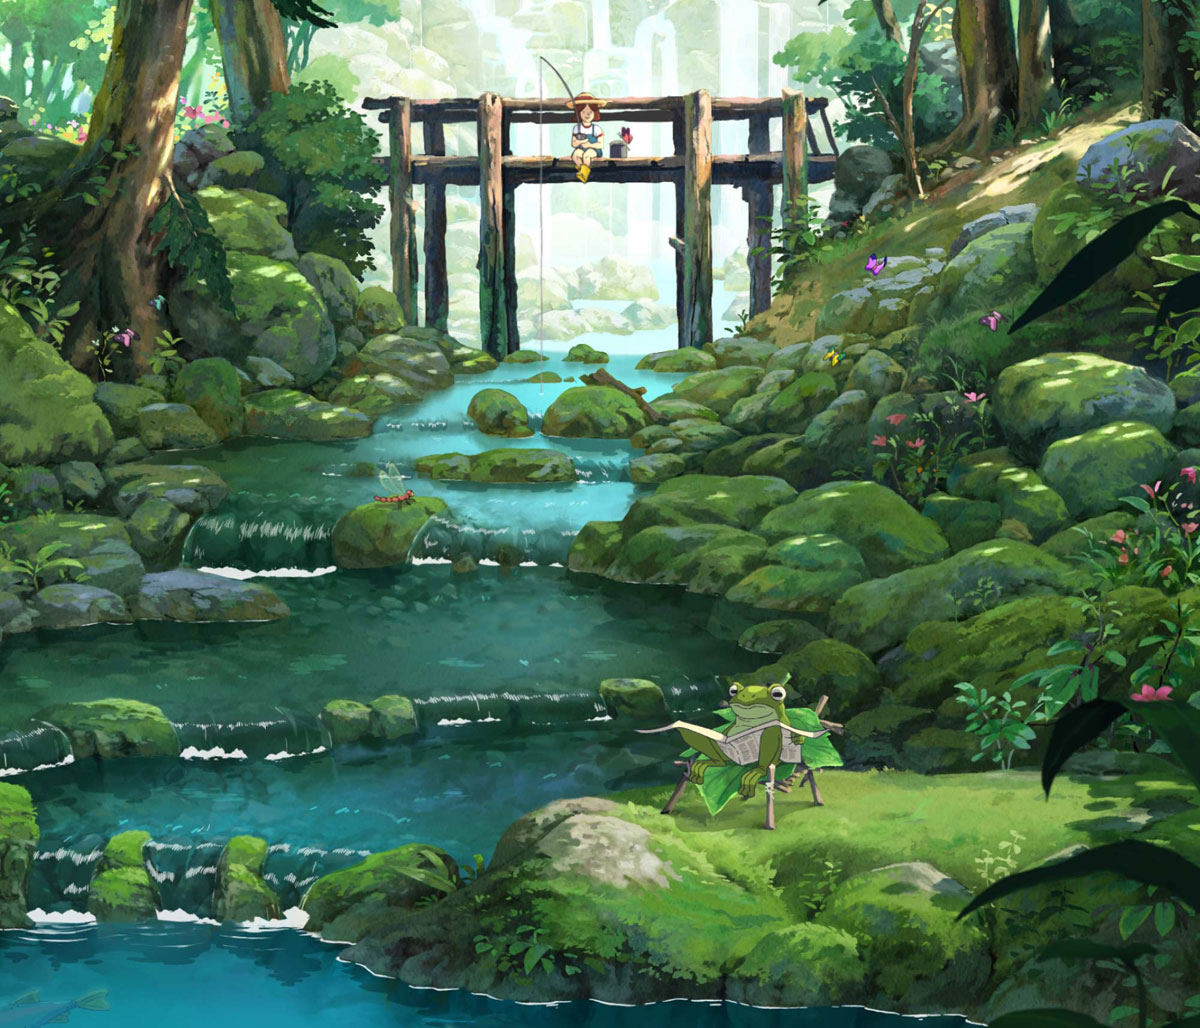 travel oregon anime 8 The Artwork for Oregons Anime Inspired Tourism Spot is Beautiful